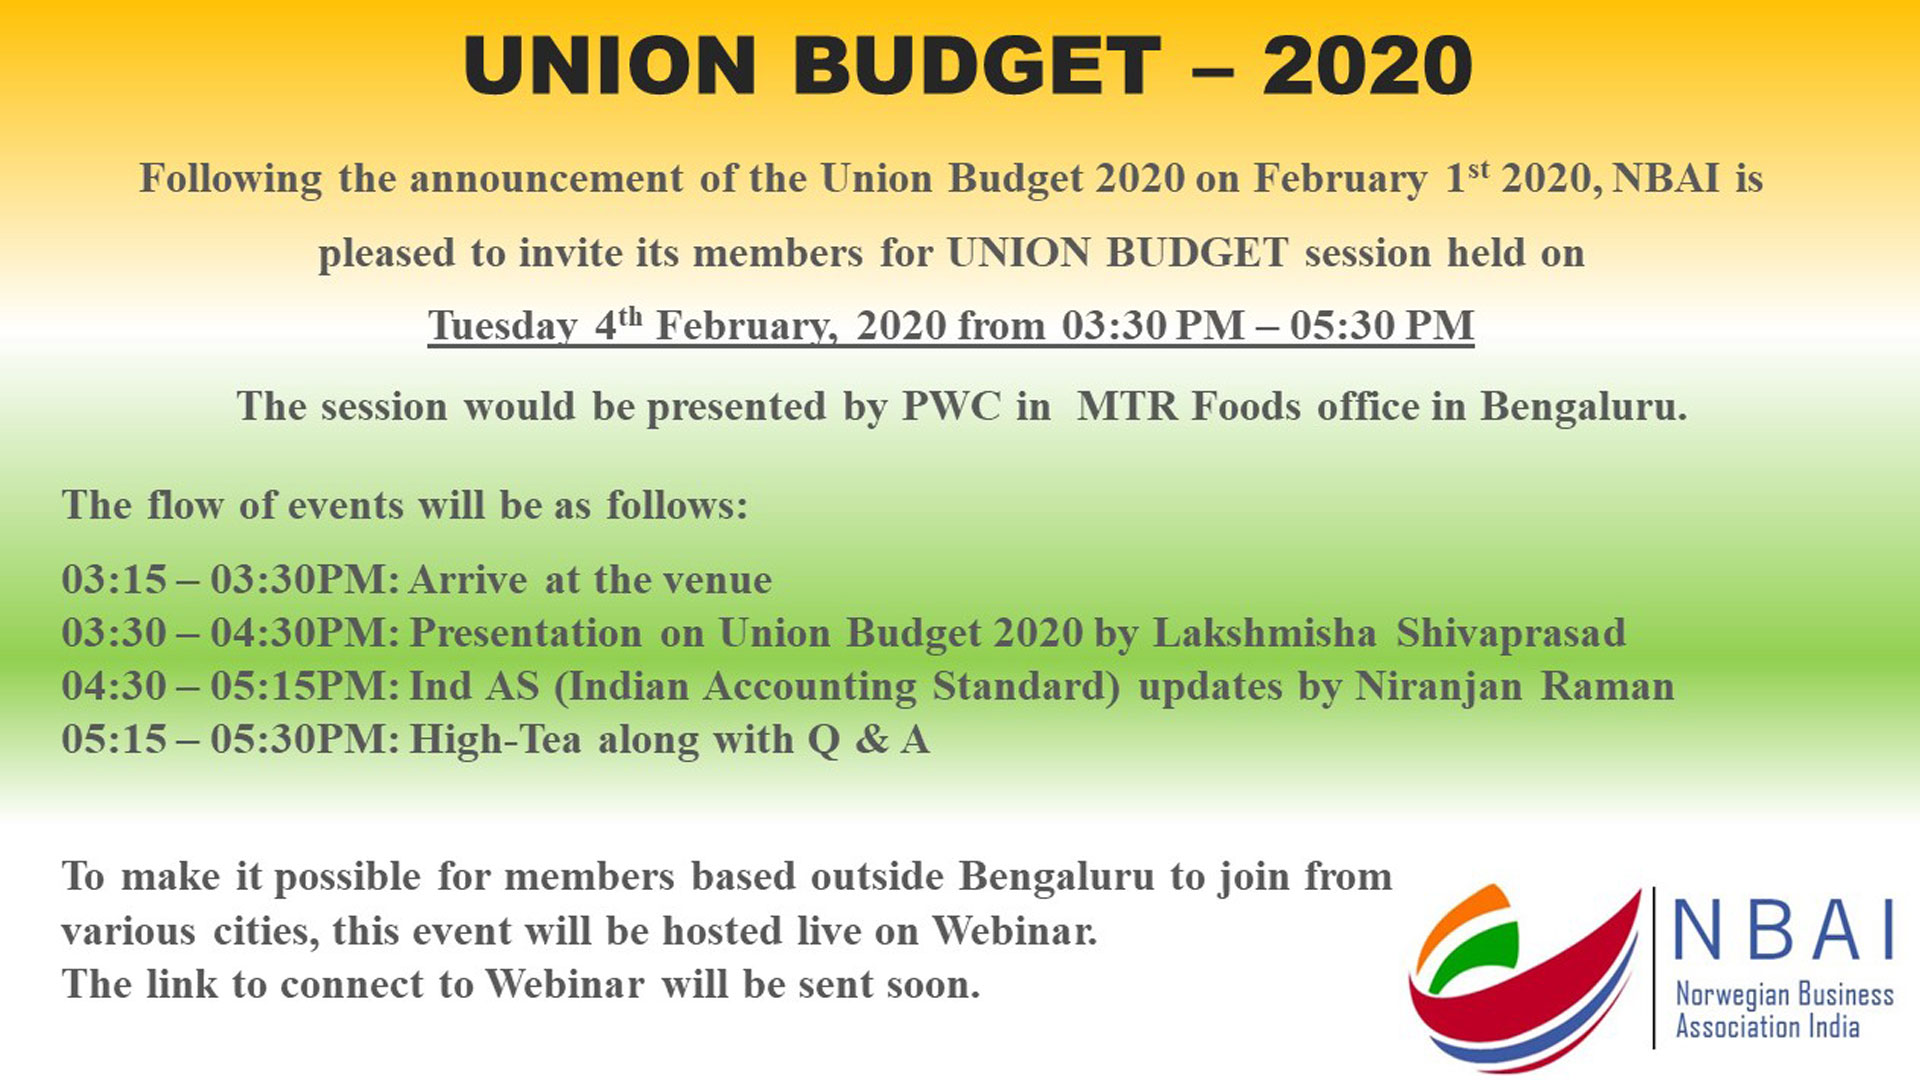 UNION BUDGET BY NBAI – TUESDAY, 04 FEBRUARY IN MTR FOODS OFFICE, BENGALURU